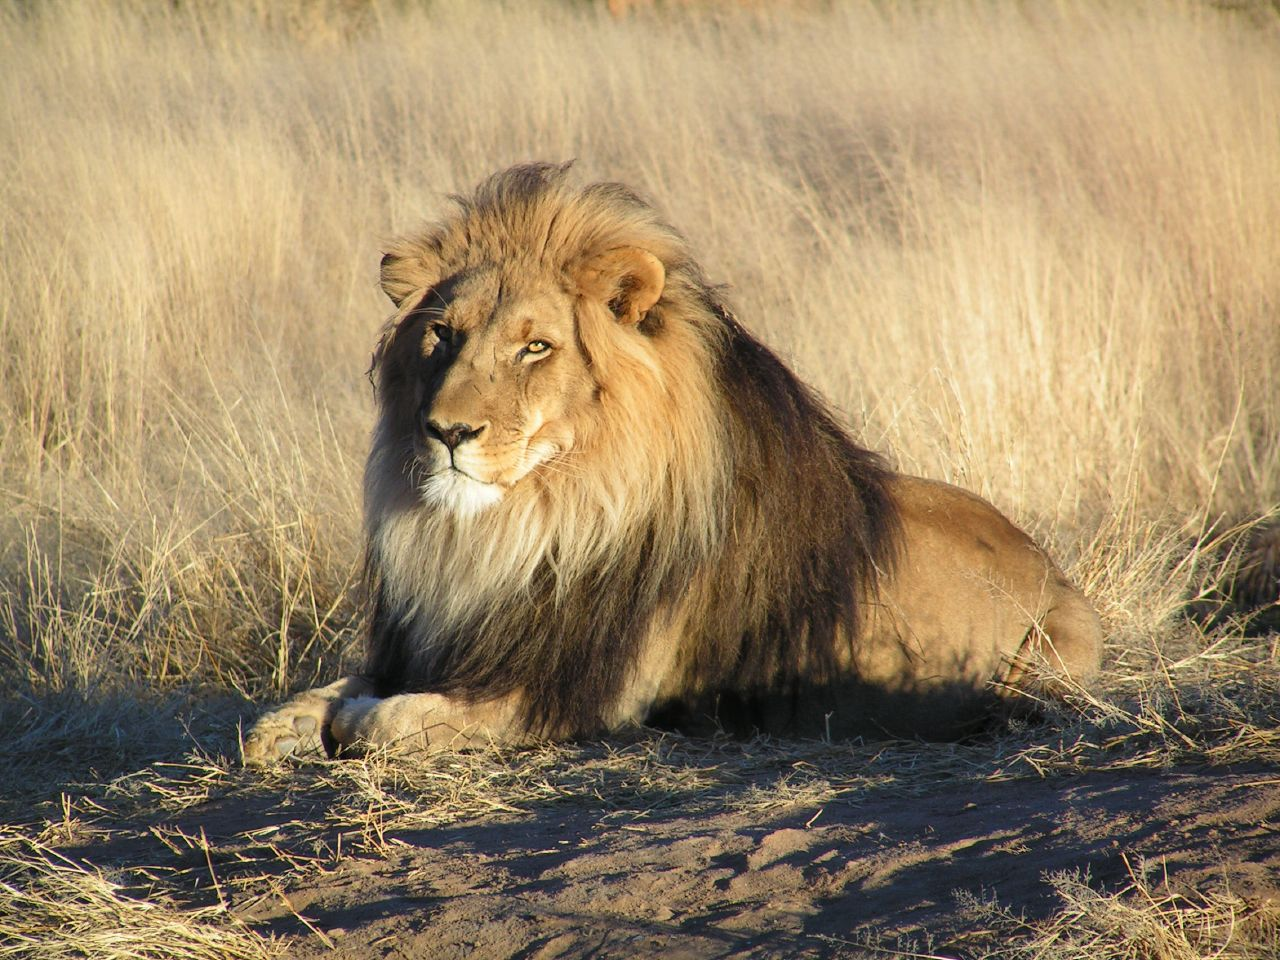 Hd Wallpaper Graphic Indian Lion And African Lion And White Loin